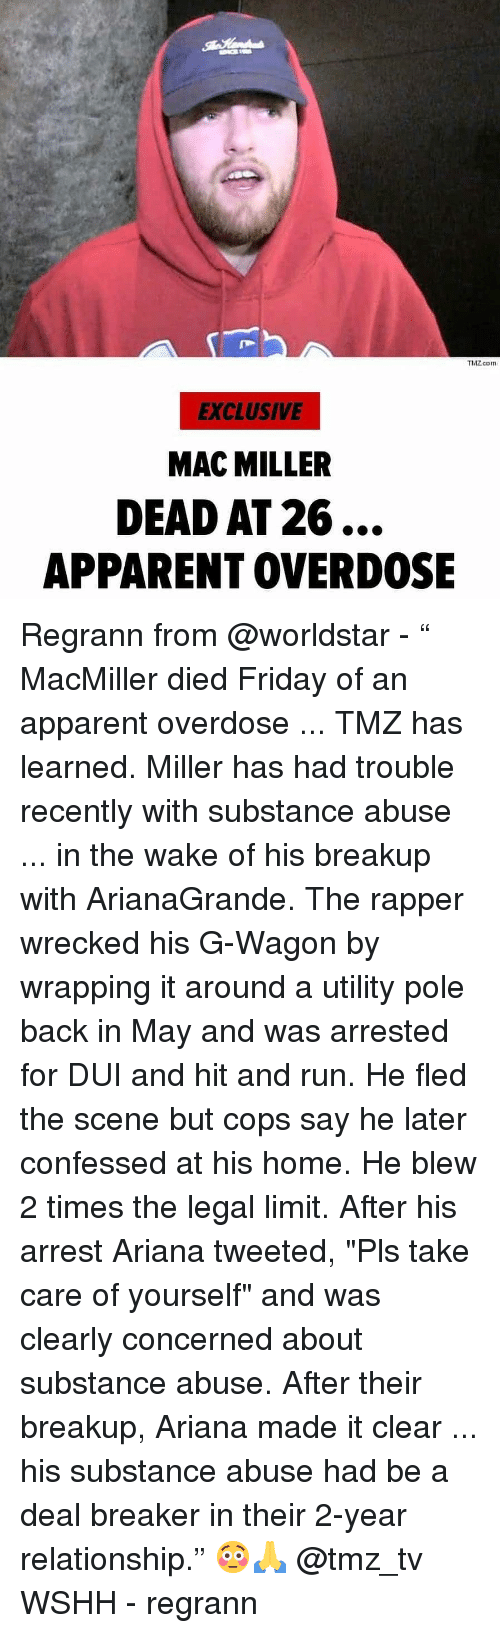 """Friday, Mac Miller, and Memes: ThZ.com  EXCLUSIVE  MAC MILLER  DEAD AT 26...  APPARENT OVERDOSE Regrann from @worldstar - """" MacMiller died Friday of an apparent overdose ... TMZ has learned. Miller has had trouble recently with substance abuse ... in the wake of his breakup with ArianaGrande. The rapper wrecked his G-Wagon by wrapping it around a utility pole back in May and was arrested for DUI and hit and run. He fled the scene but cops say he later confessed at his home. He blew 2 times the legal limit. After his arrest Ariana tweeted, """"Pls take care of yourself"""" and was clearly concerned about substance abuse. After their breakup, Ariana made it clear ... his substance abuse had be a deal breaker in their 2-year relationship."""" 😳🙏 @tmz_tv WSHH - regrann"""